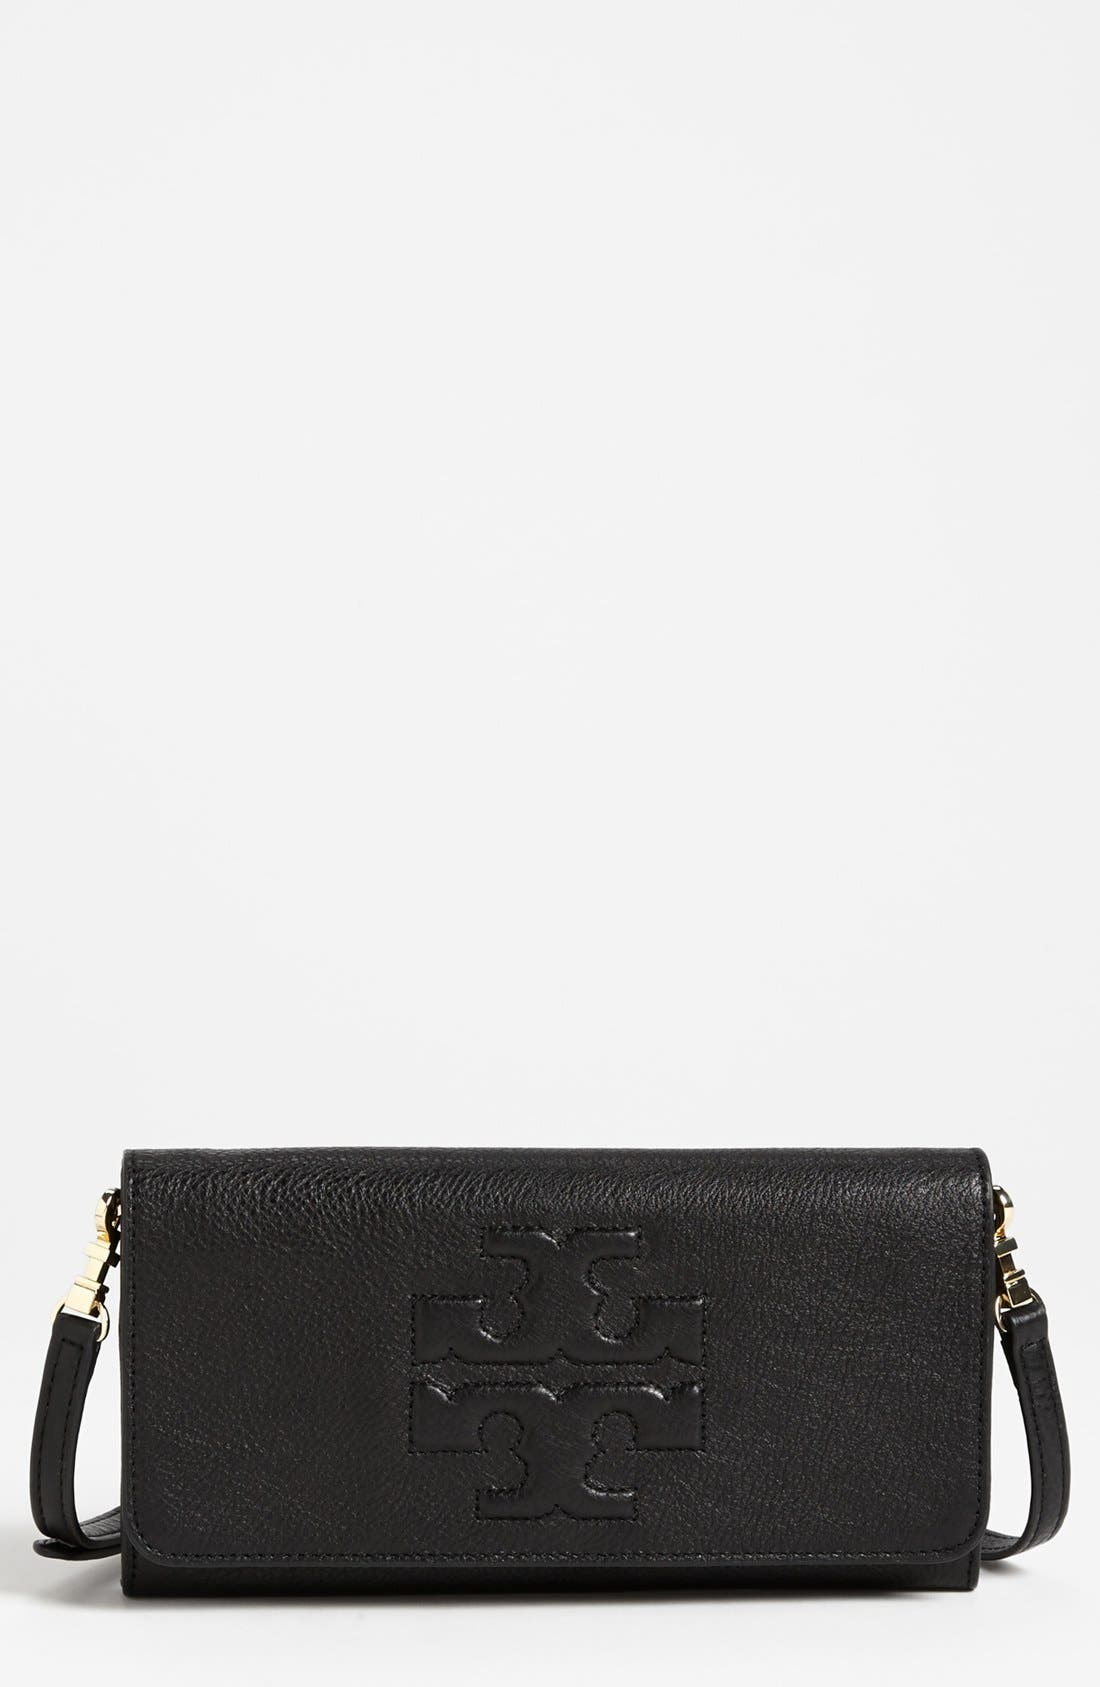 Alternate Image 1 Selected - Tory Burch 'Thea - Bombe' Leather Clutch